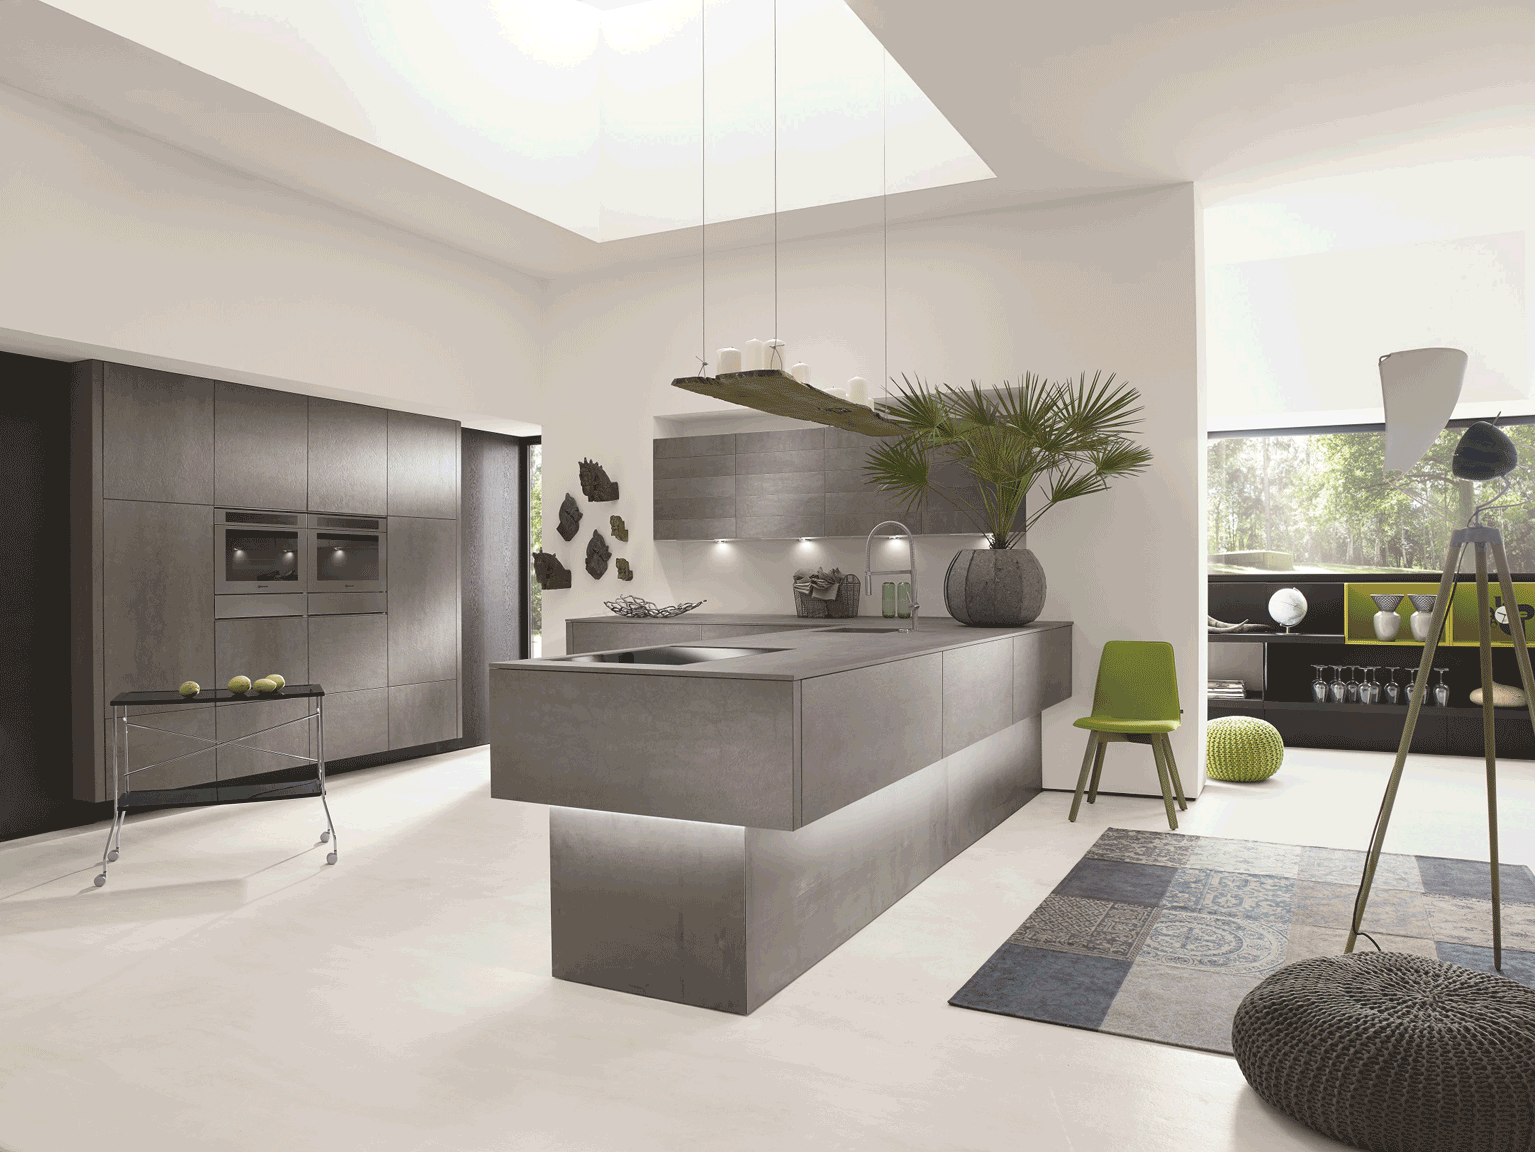 Alno Concretto kitchen with a ceramic concrete-effect finish, price ...